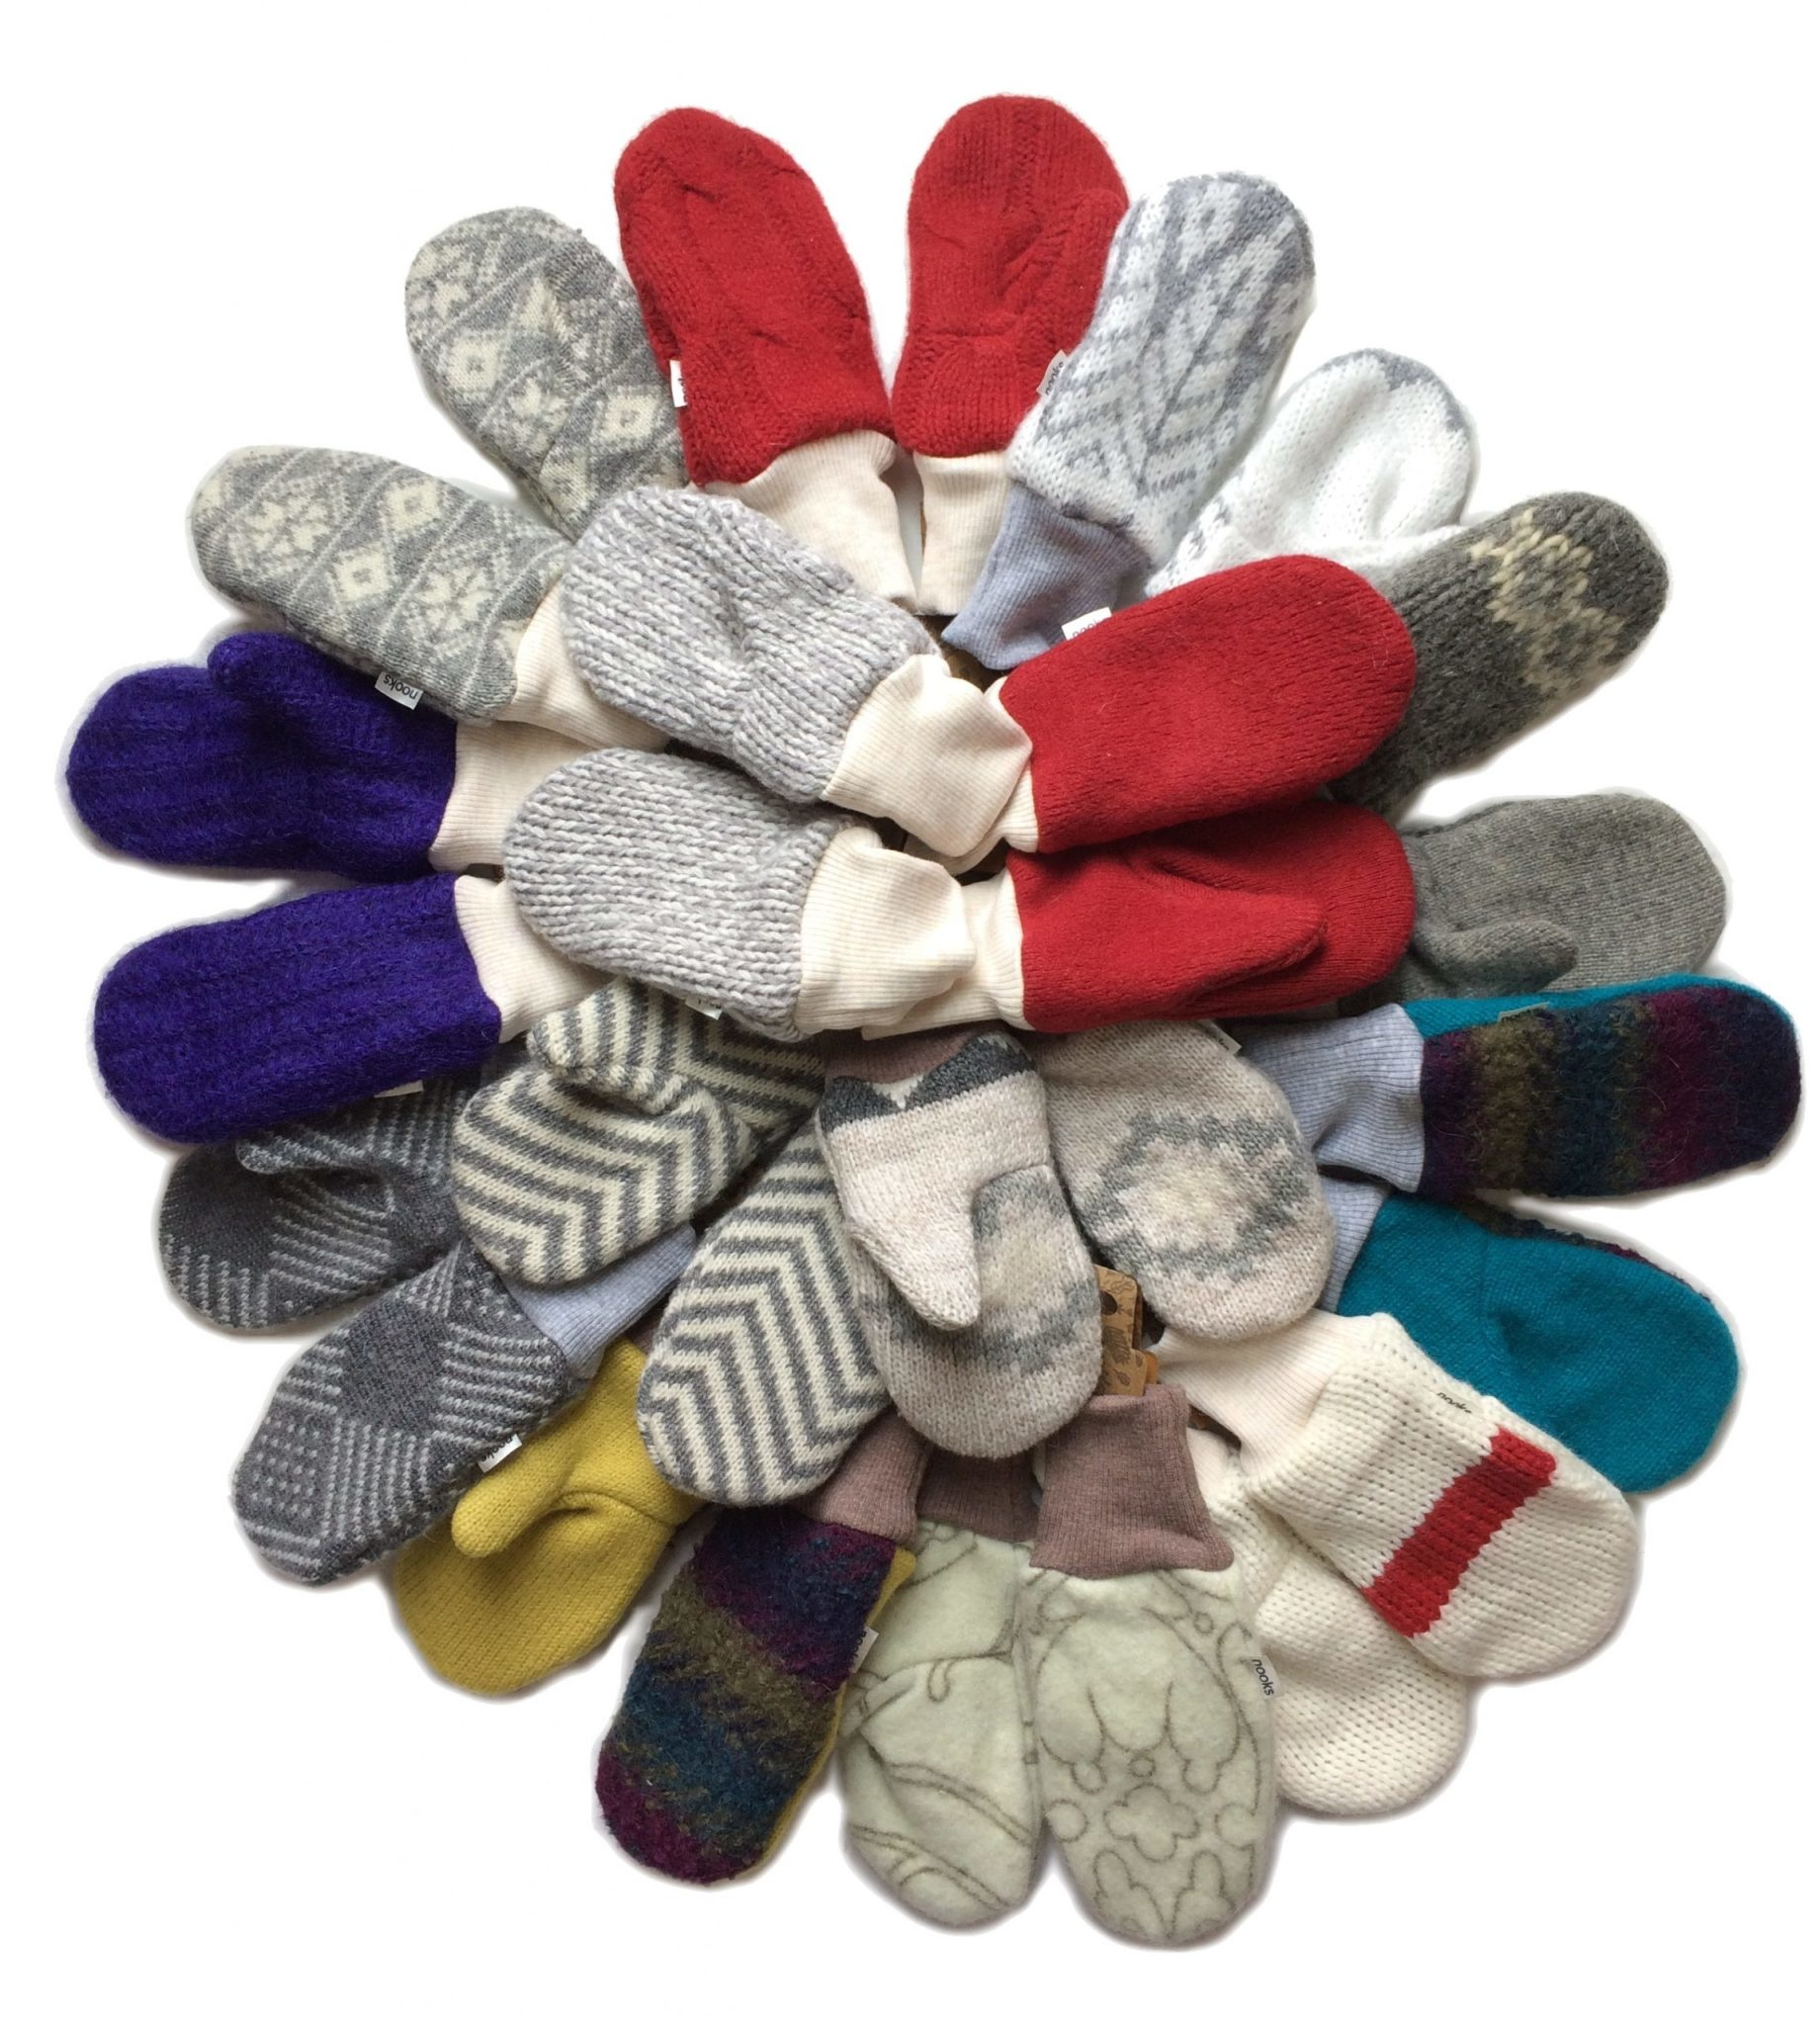 Nooks Upcycled Wool Mittens - 6-24 mos.